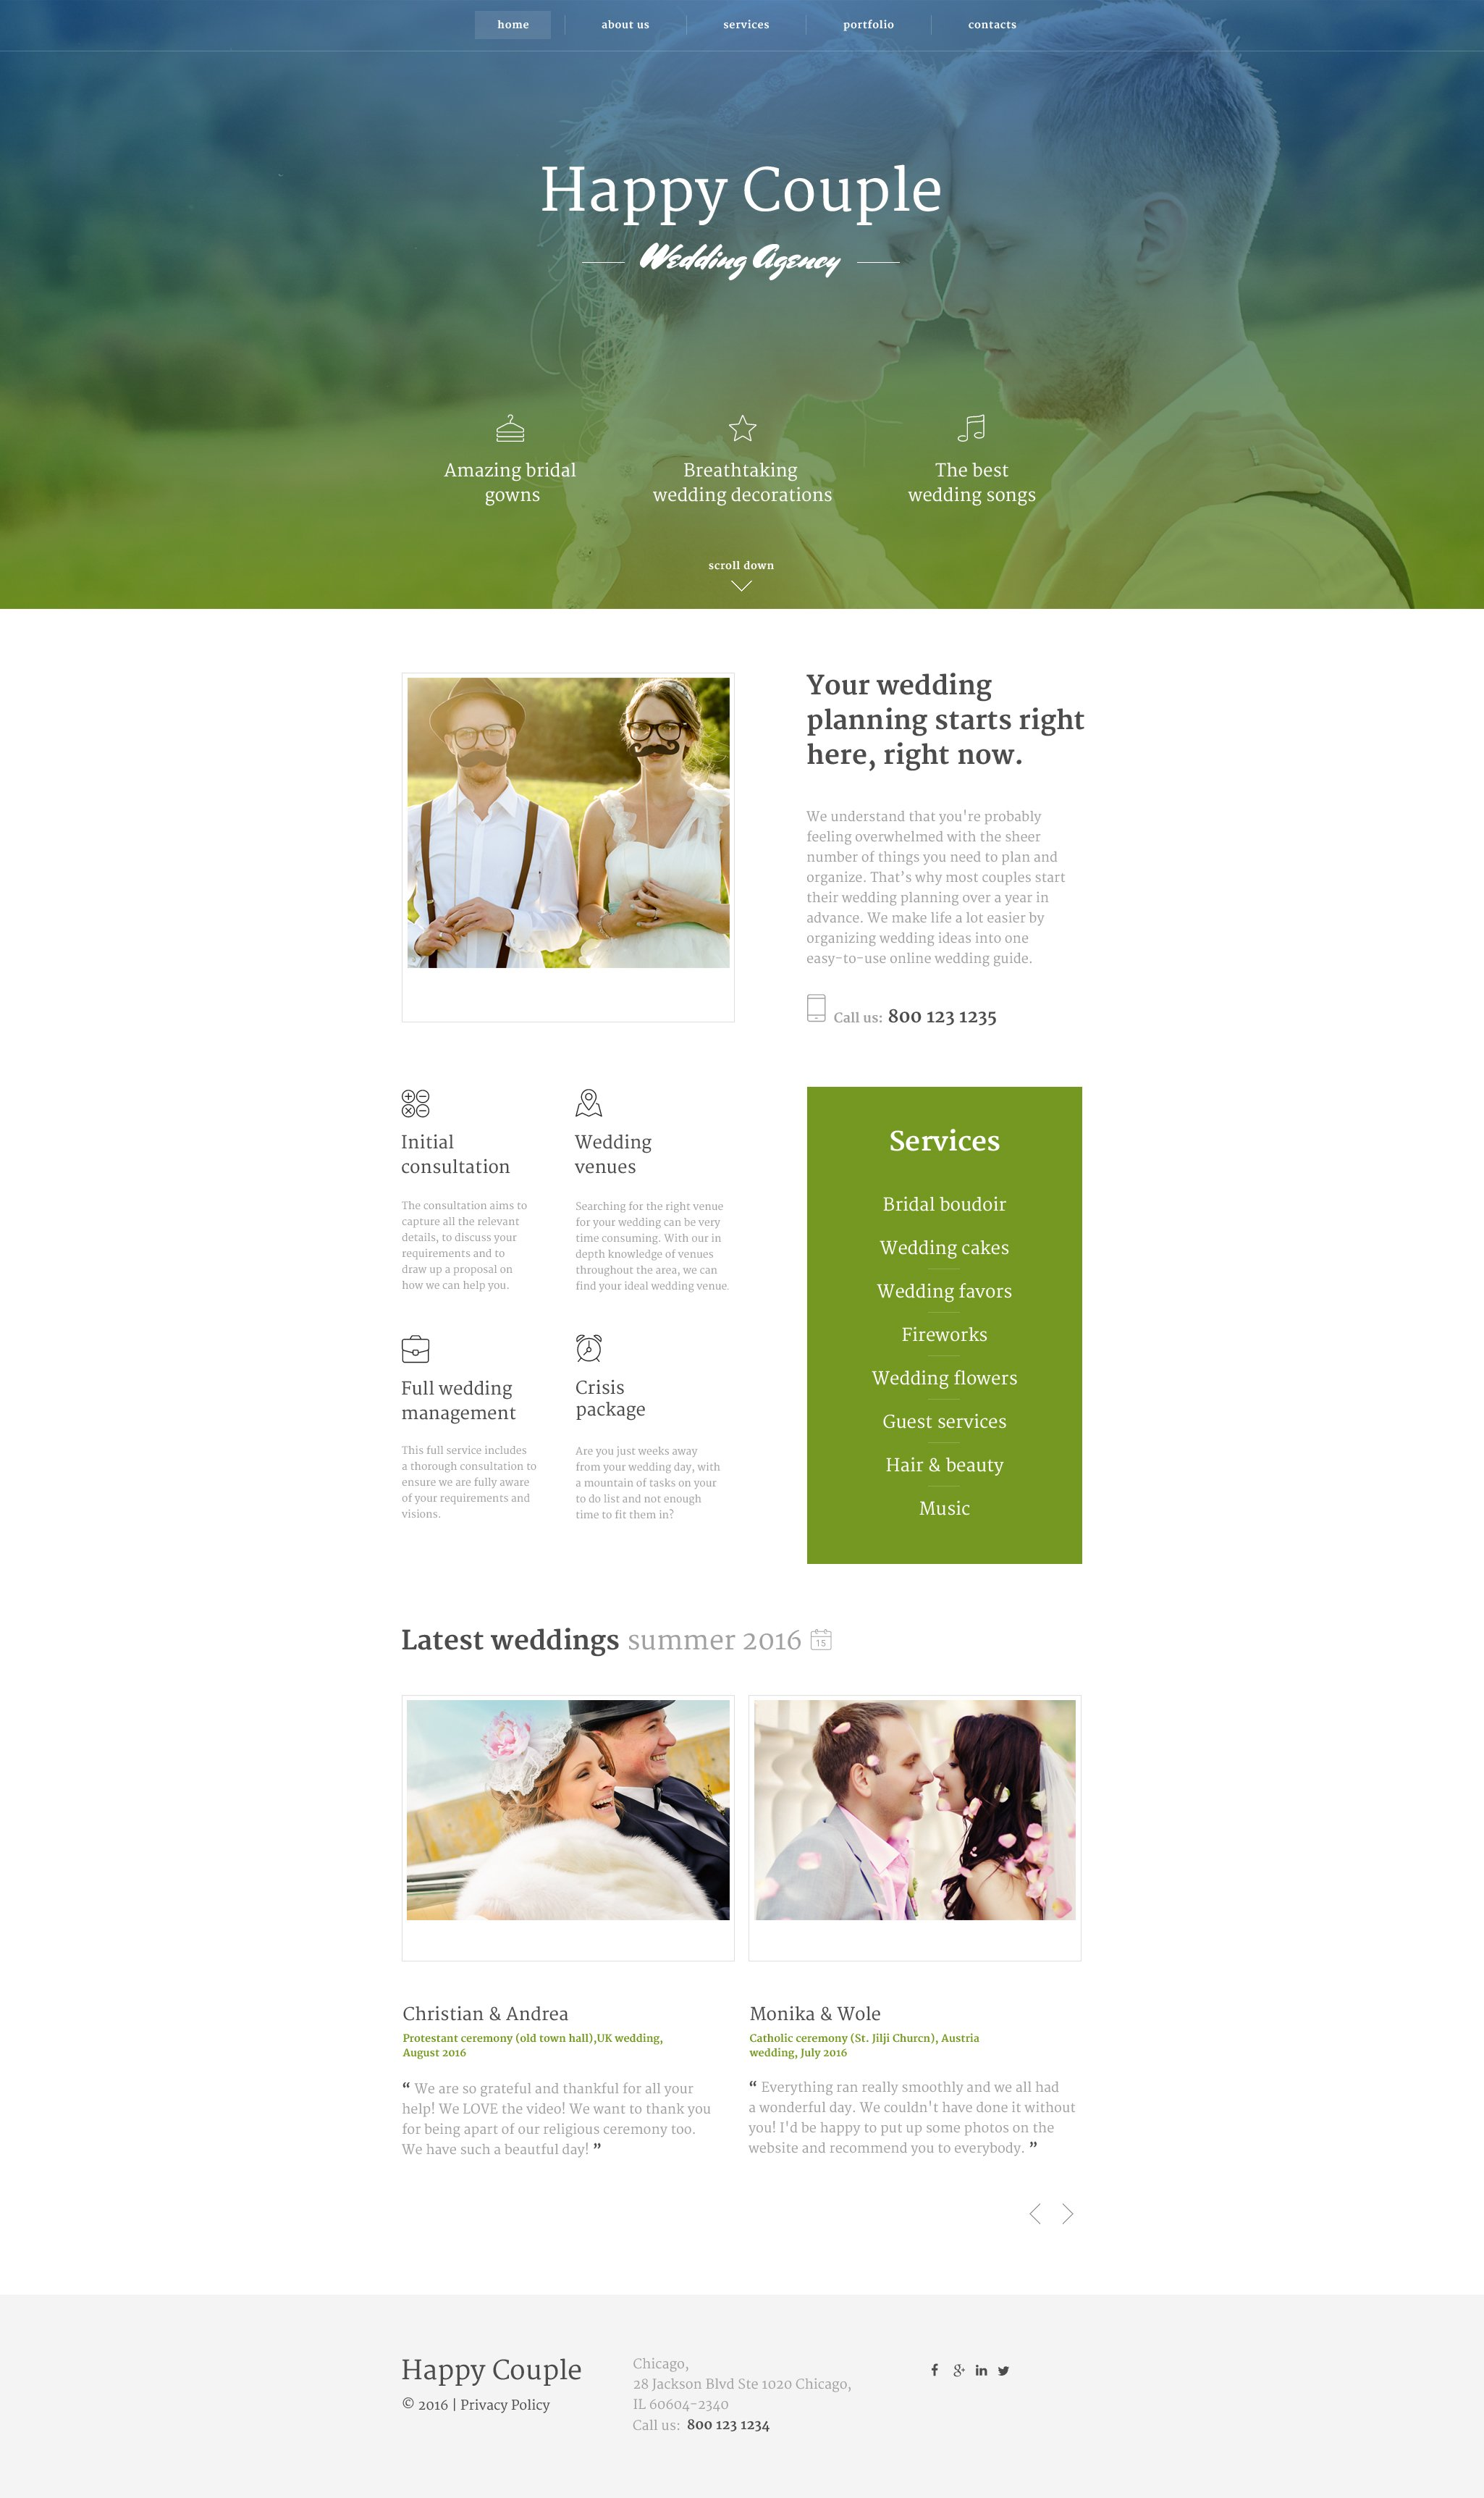 Happy Couple Website Template